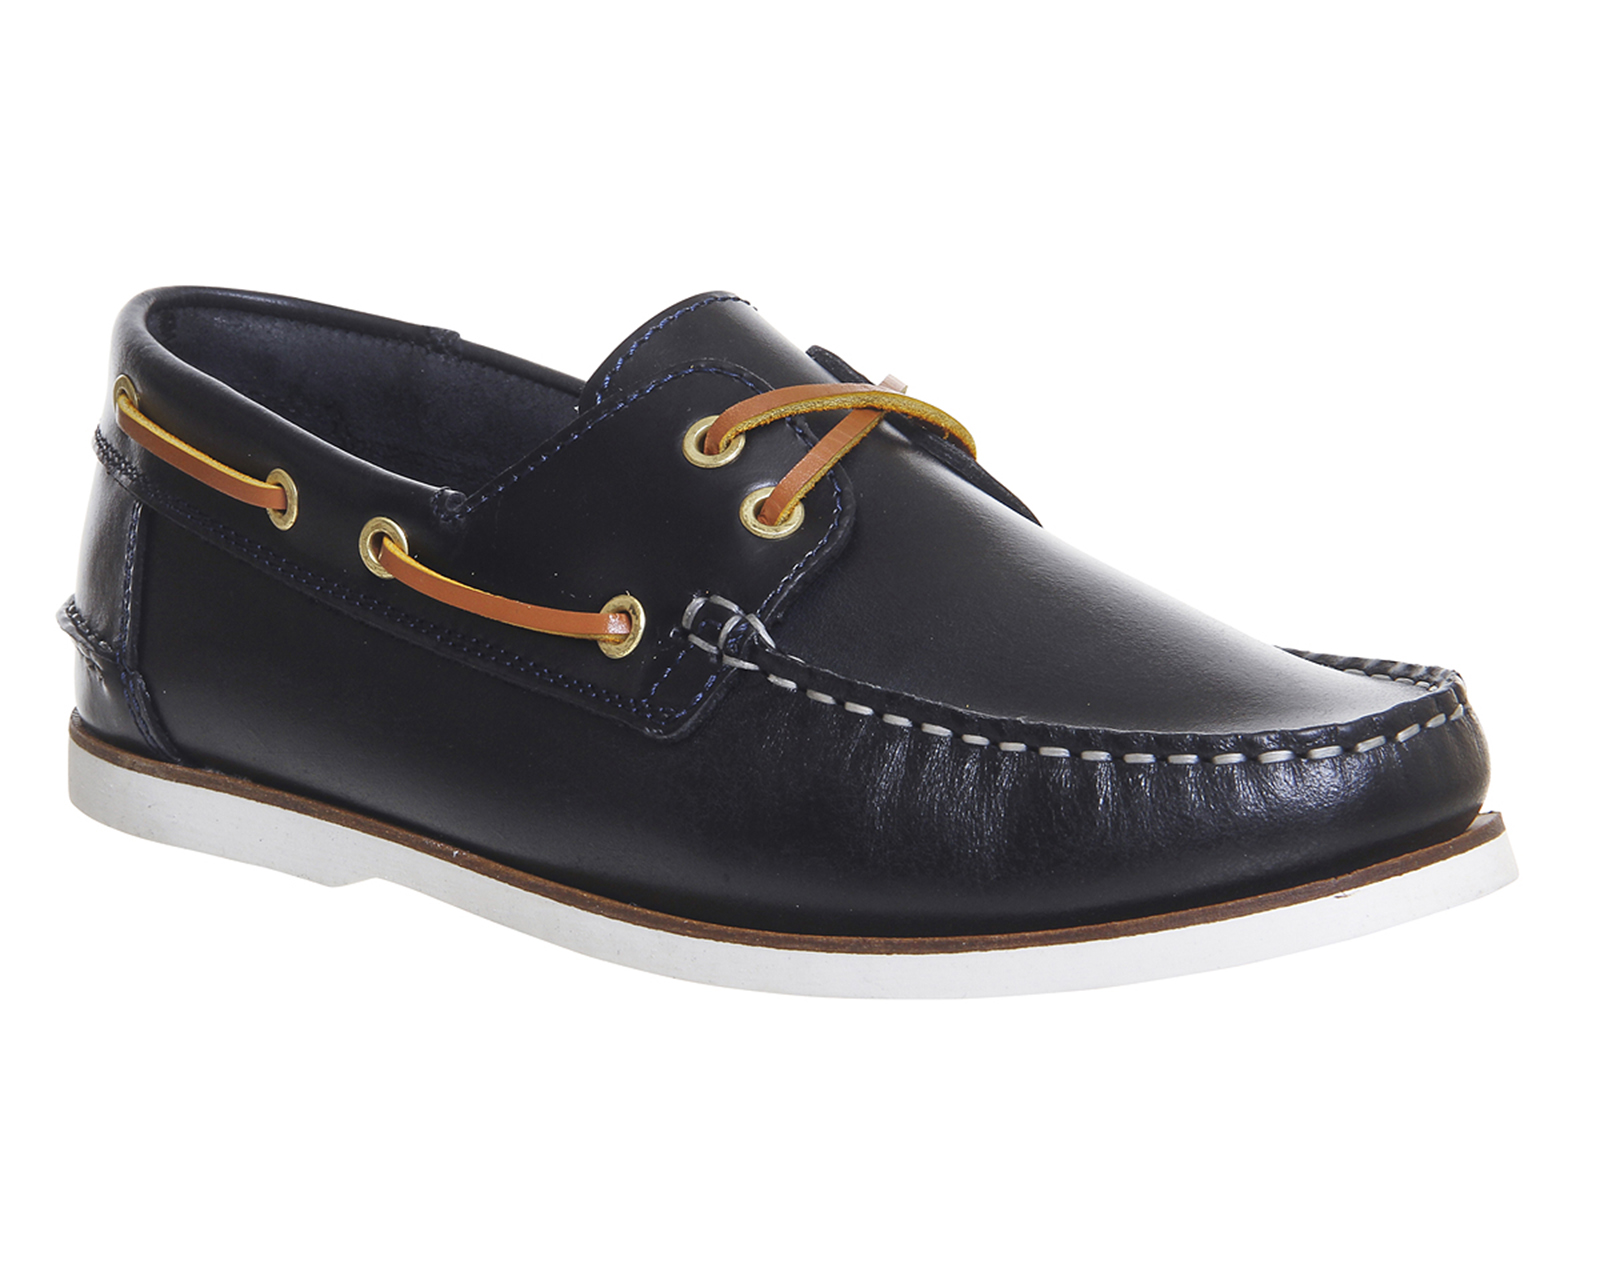 mens ask the missus deck boat shoes navy leather casual shoes